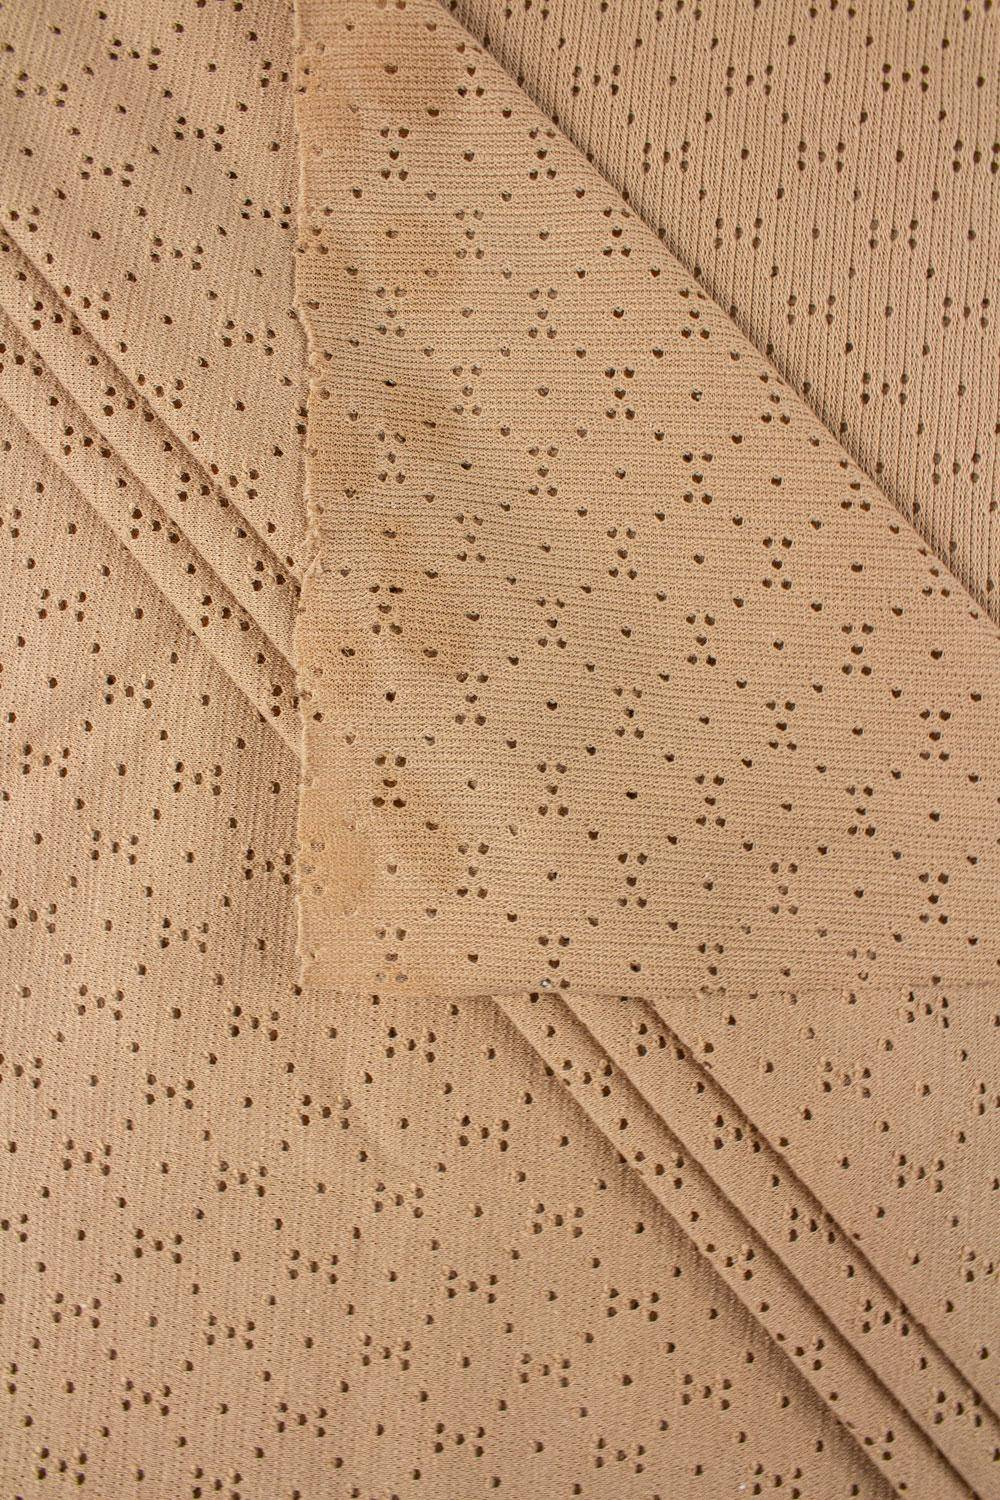 Knit - Jersey - Perforated - Nude - 175 cm - 160 g/m2